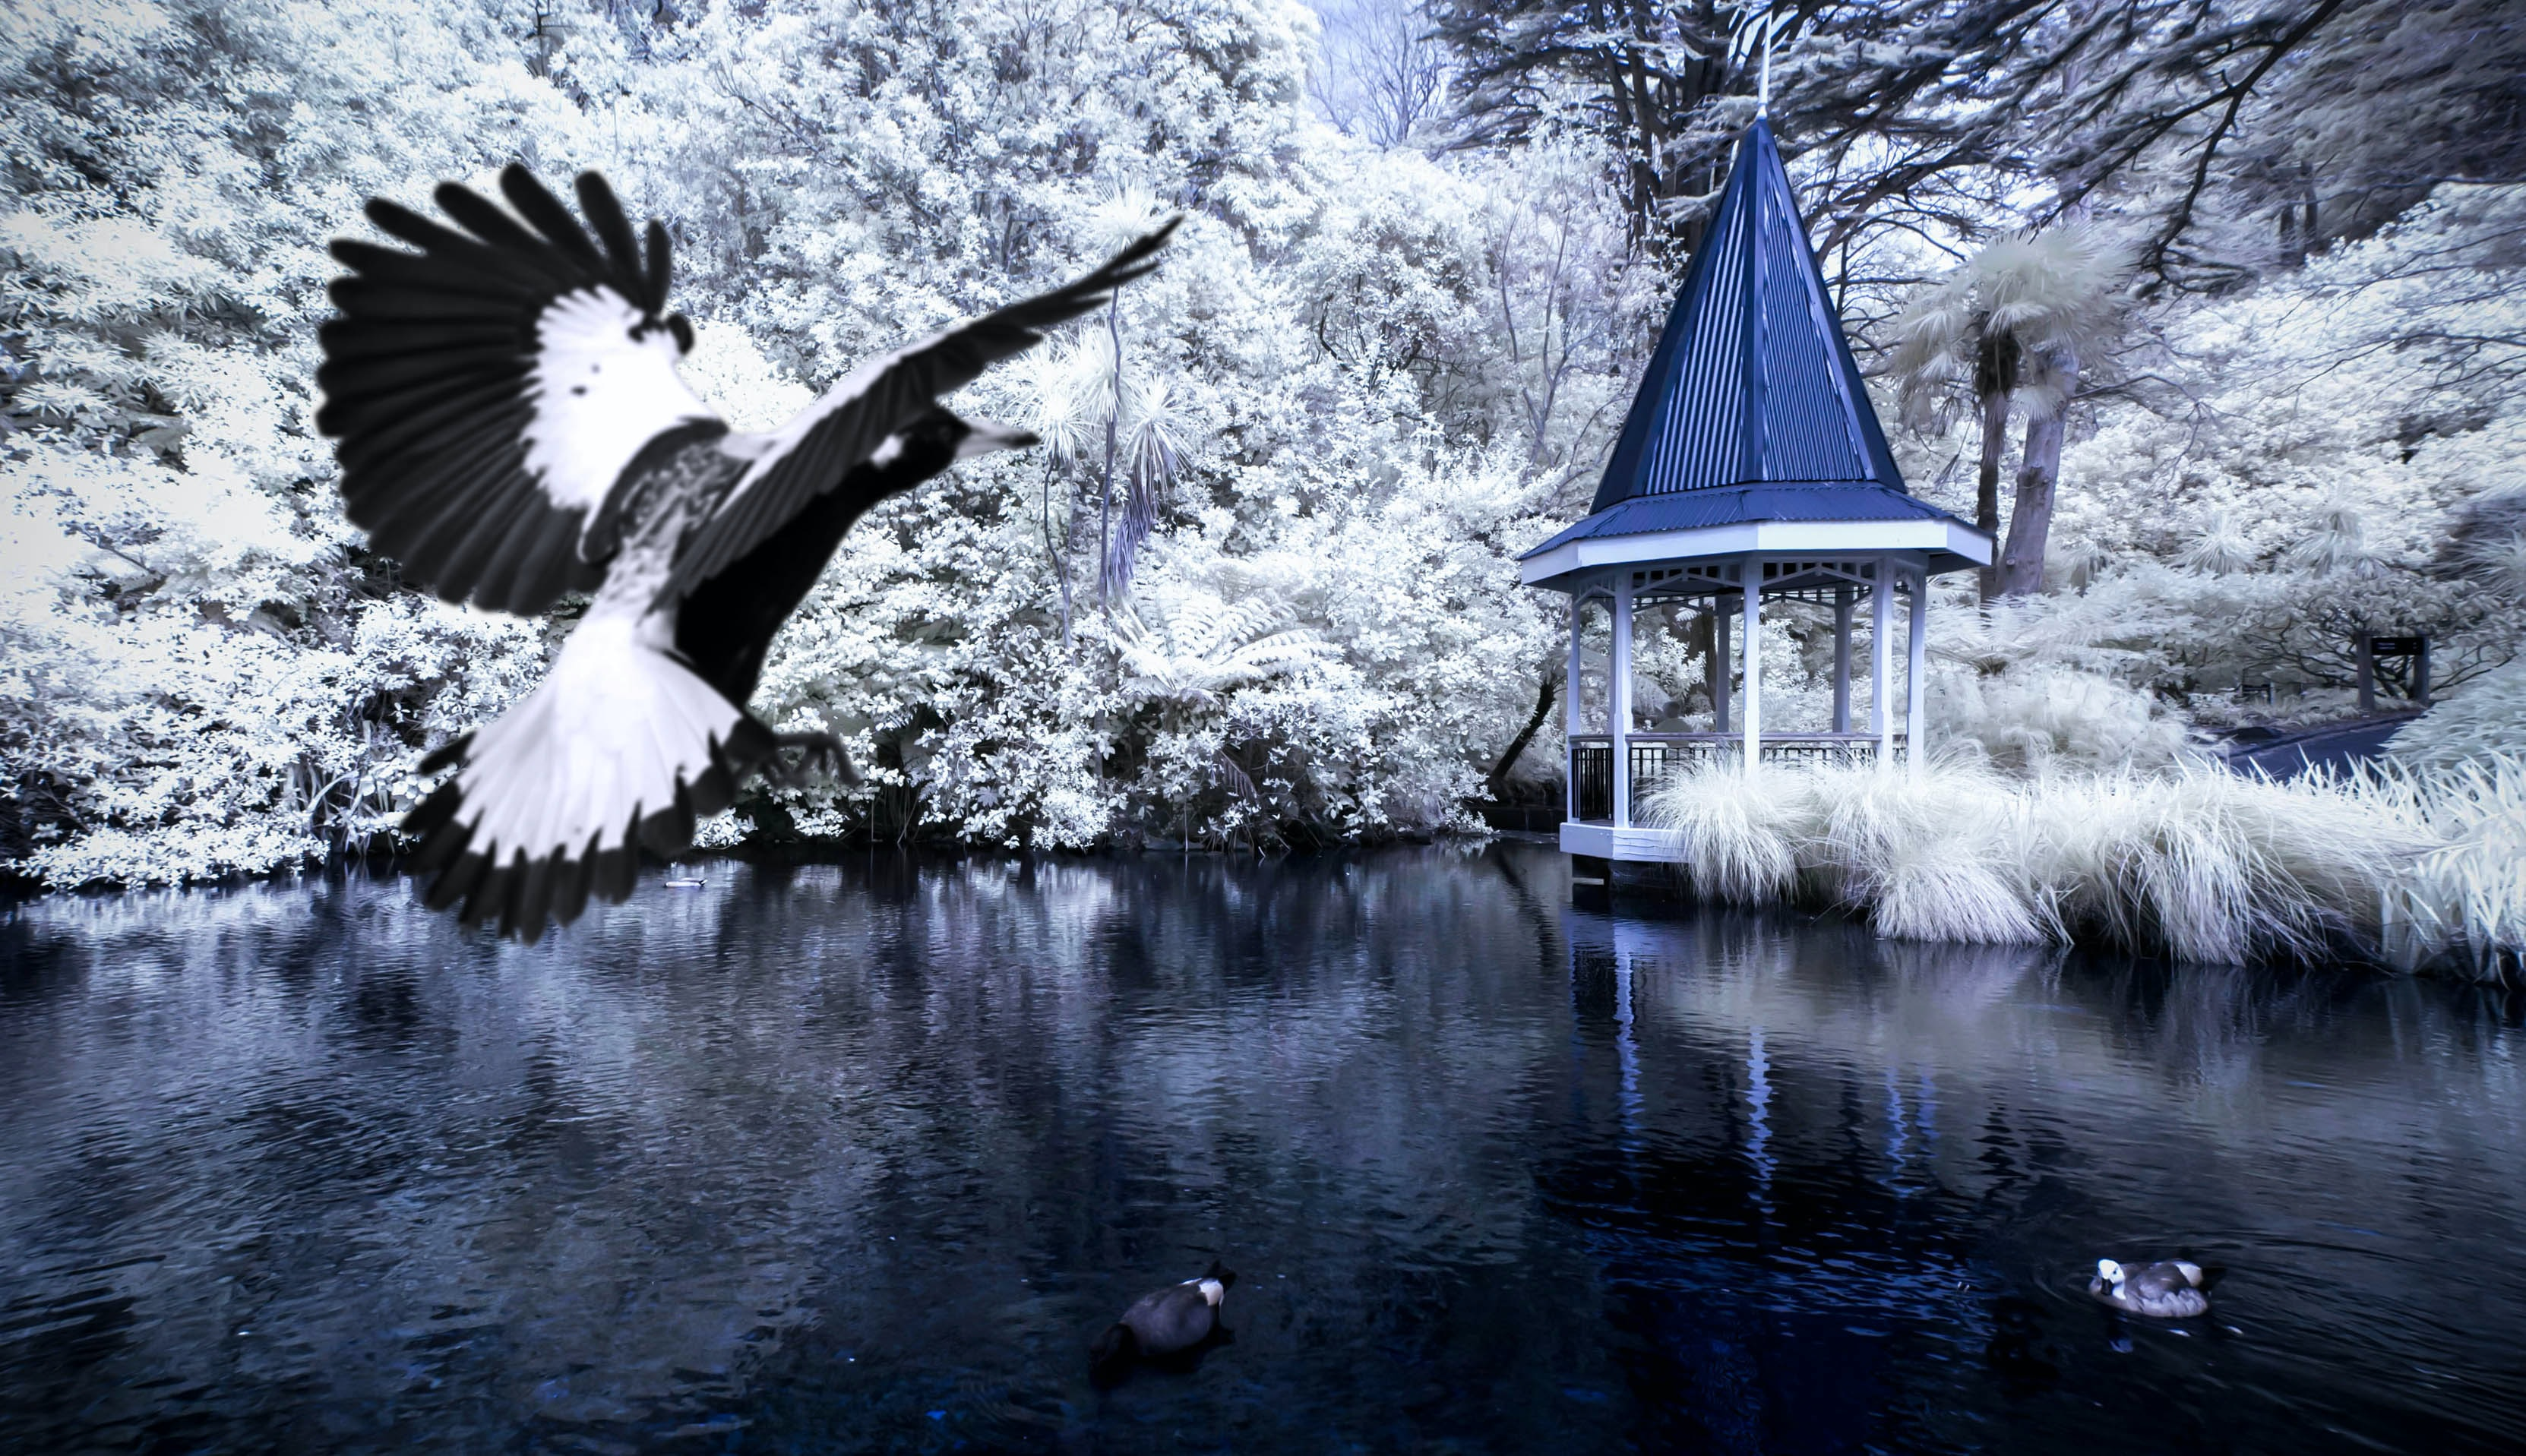 flying eagle and body of water surrounded by trees